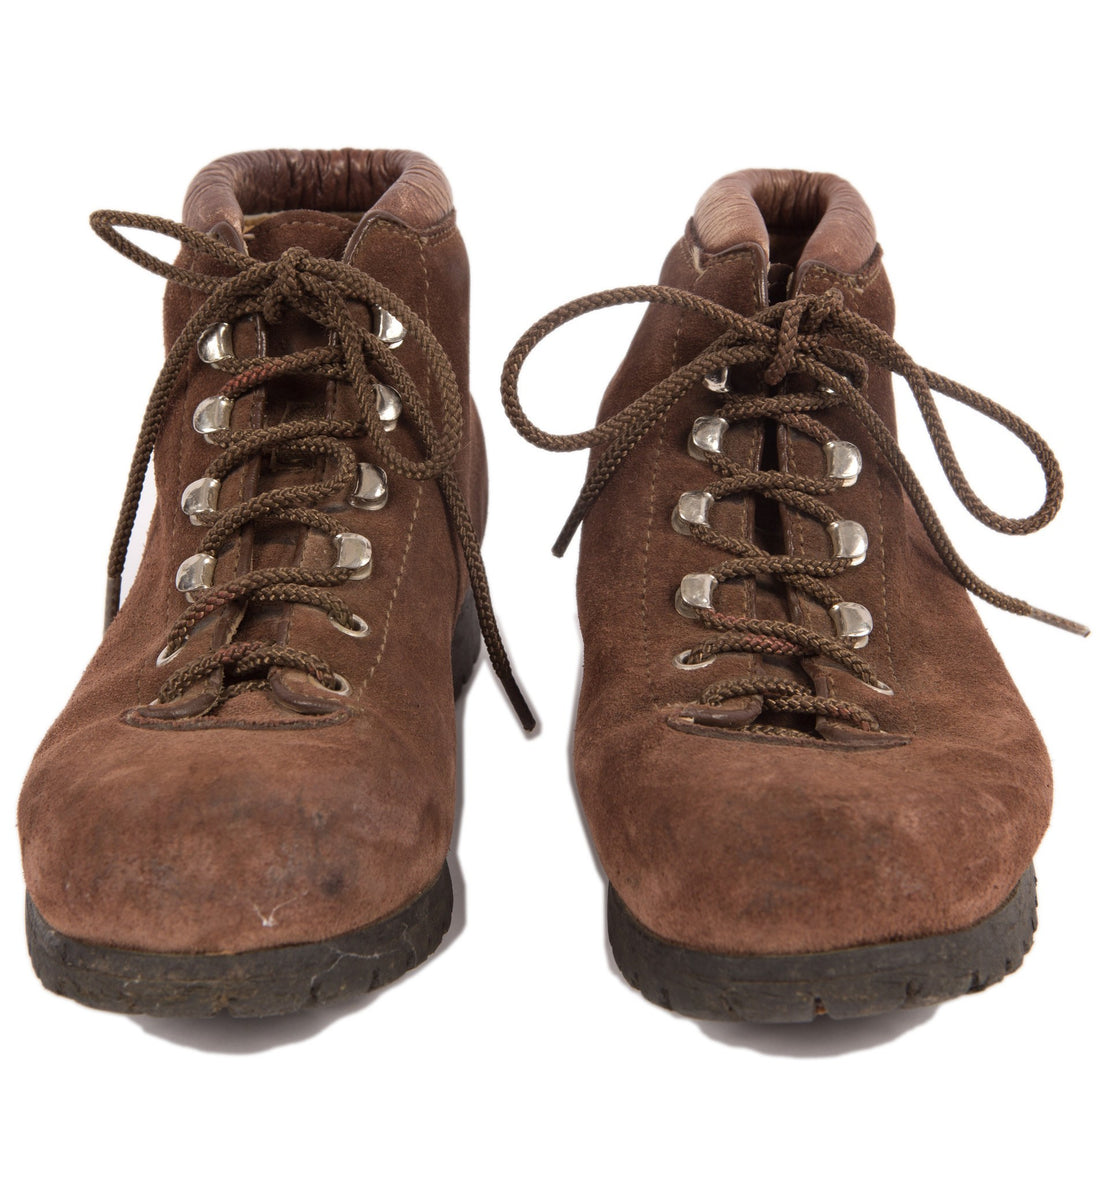 Vintage Dark Brown Hiking Boots, 7 - Vintage: Women's: Shoes - Iron and Resin